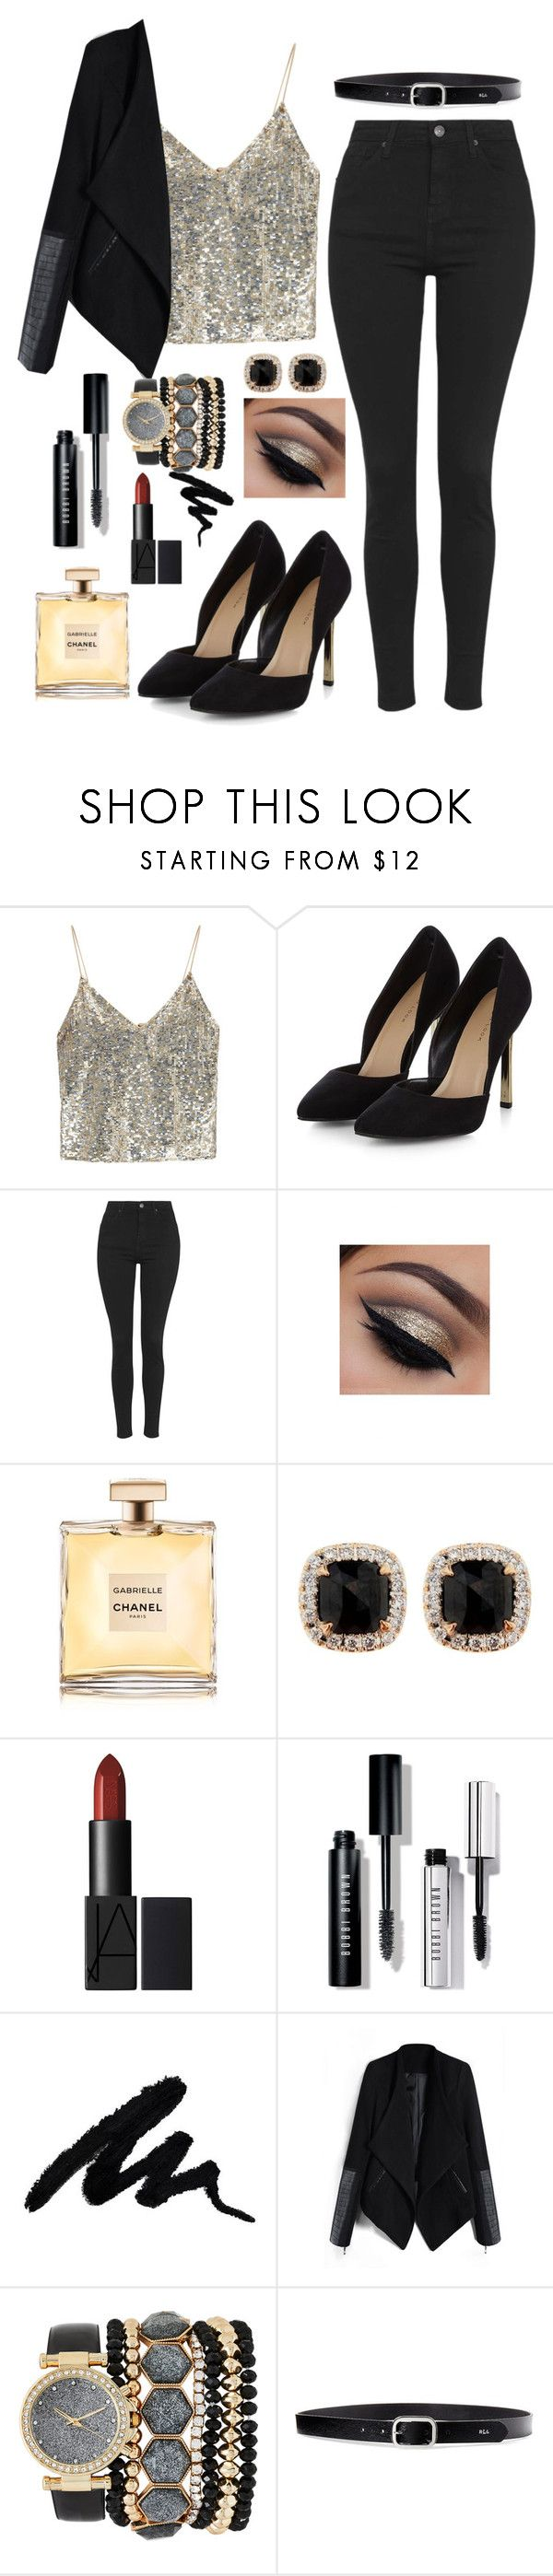 """""""Newyear's eva's outfit"""" by blnkb ❤ liked on Polyvore featuring Alice + Olivia, Topshop, Jona, Bobbi Brown Cosmetics, Jessica Carlyle and Lauren Ralph Lauren"""